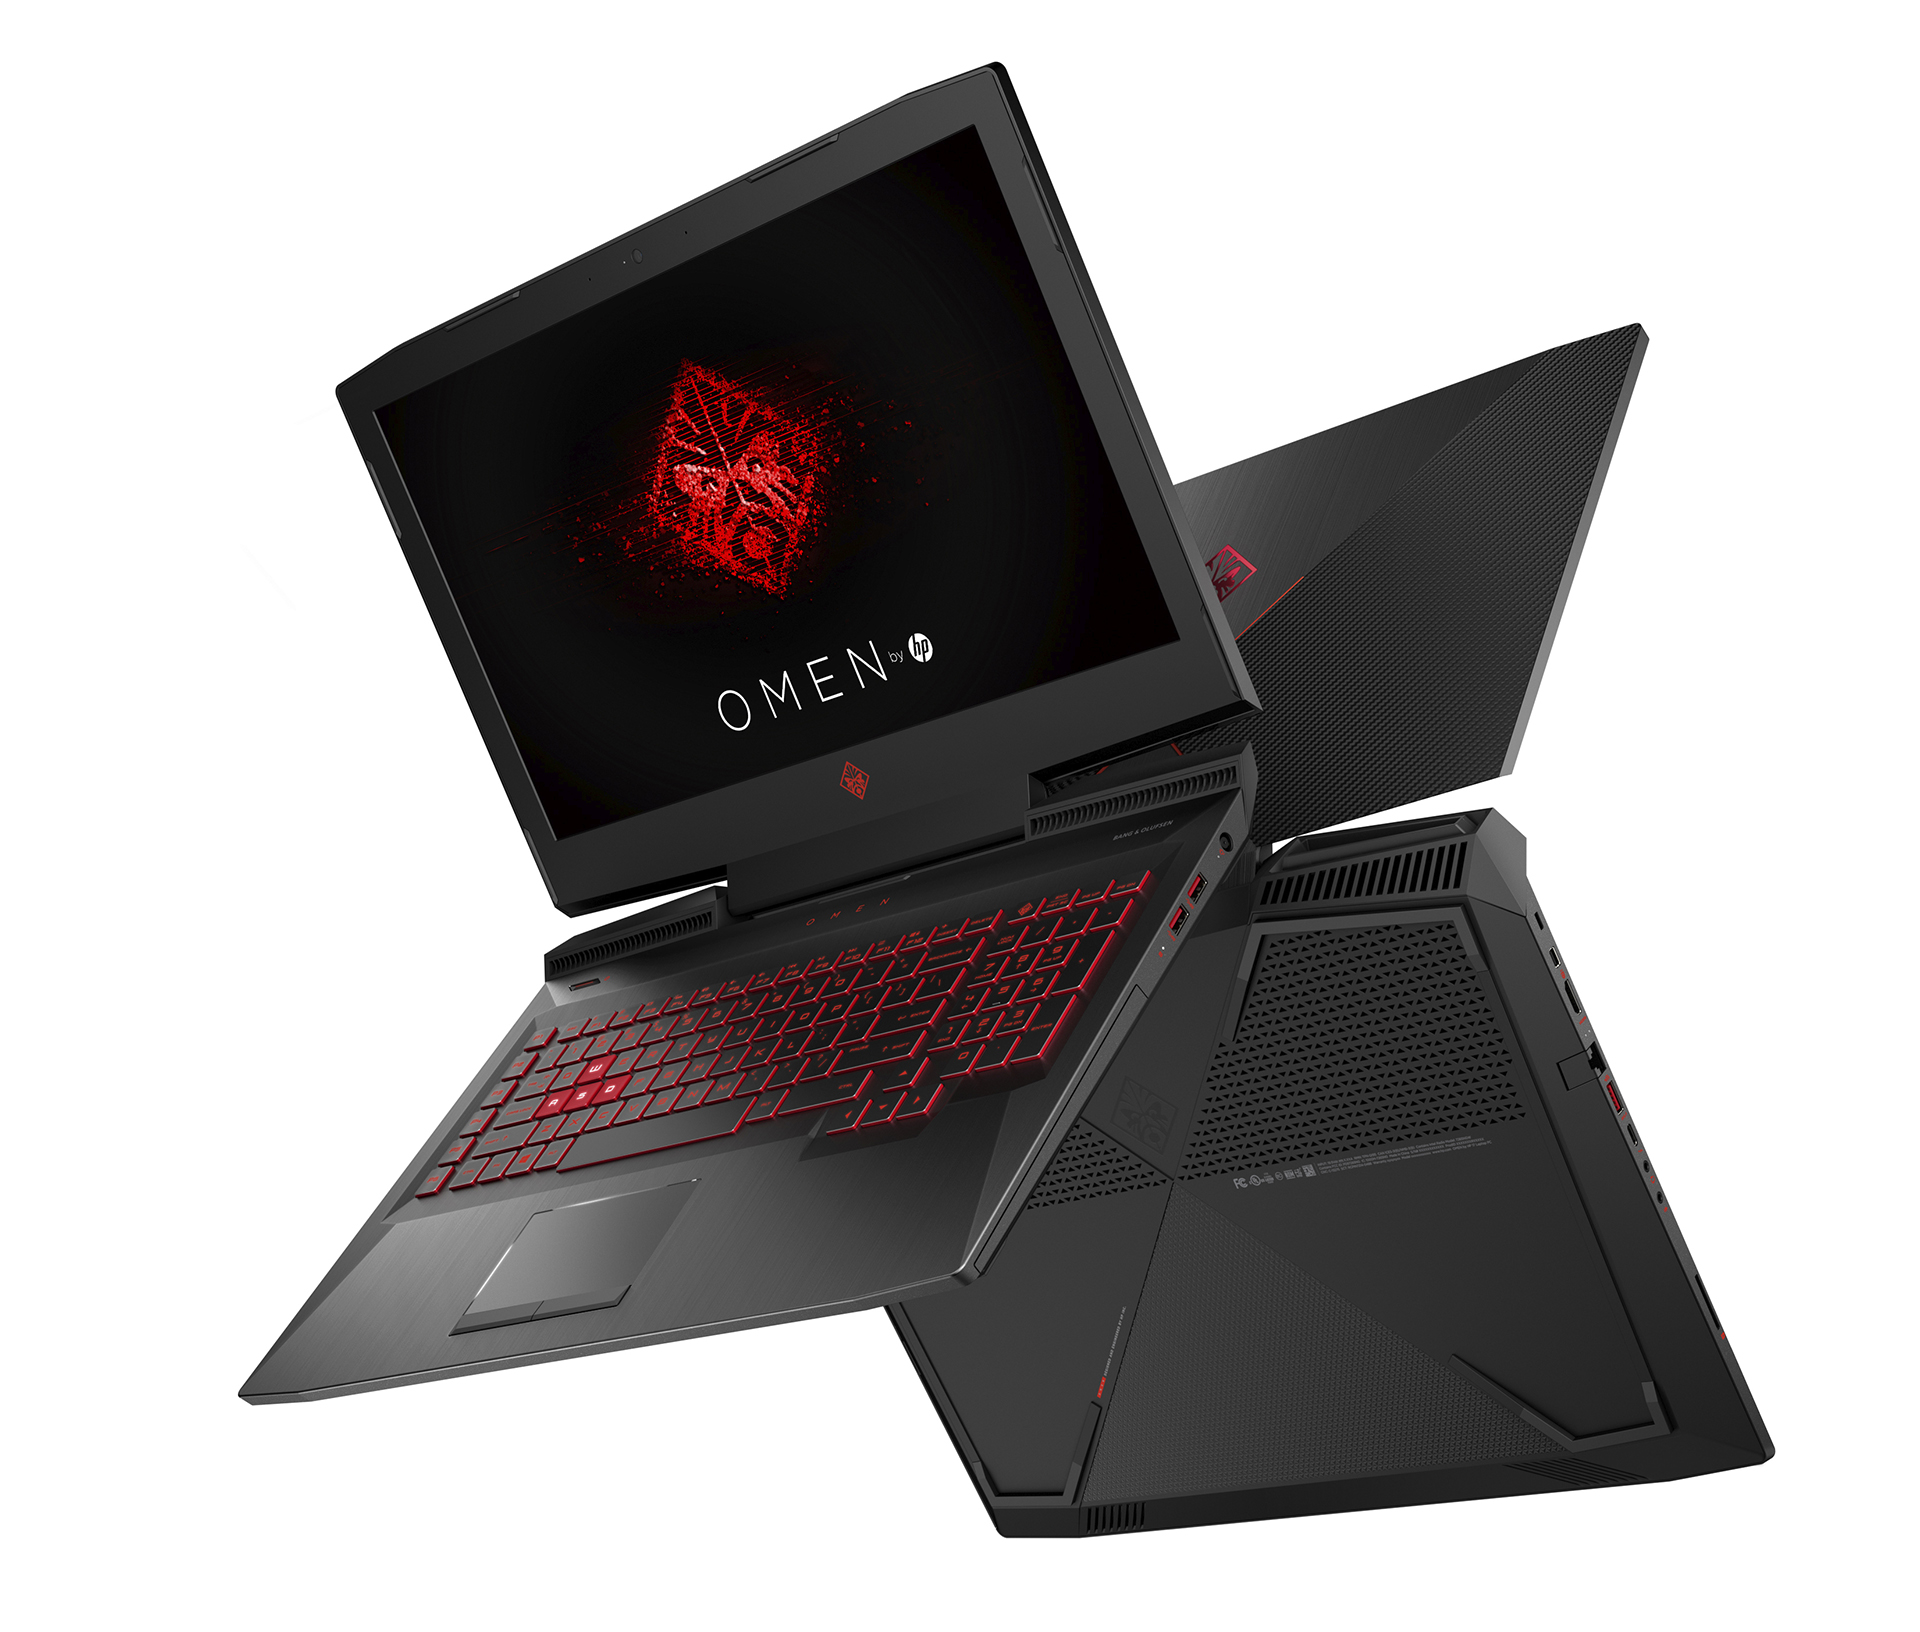 hp grows omen line with new gaming laptops vr backpack pc and more ars technica. Black Bedroom Furniture Sets. Home Design Ideas